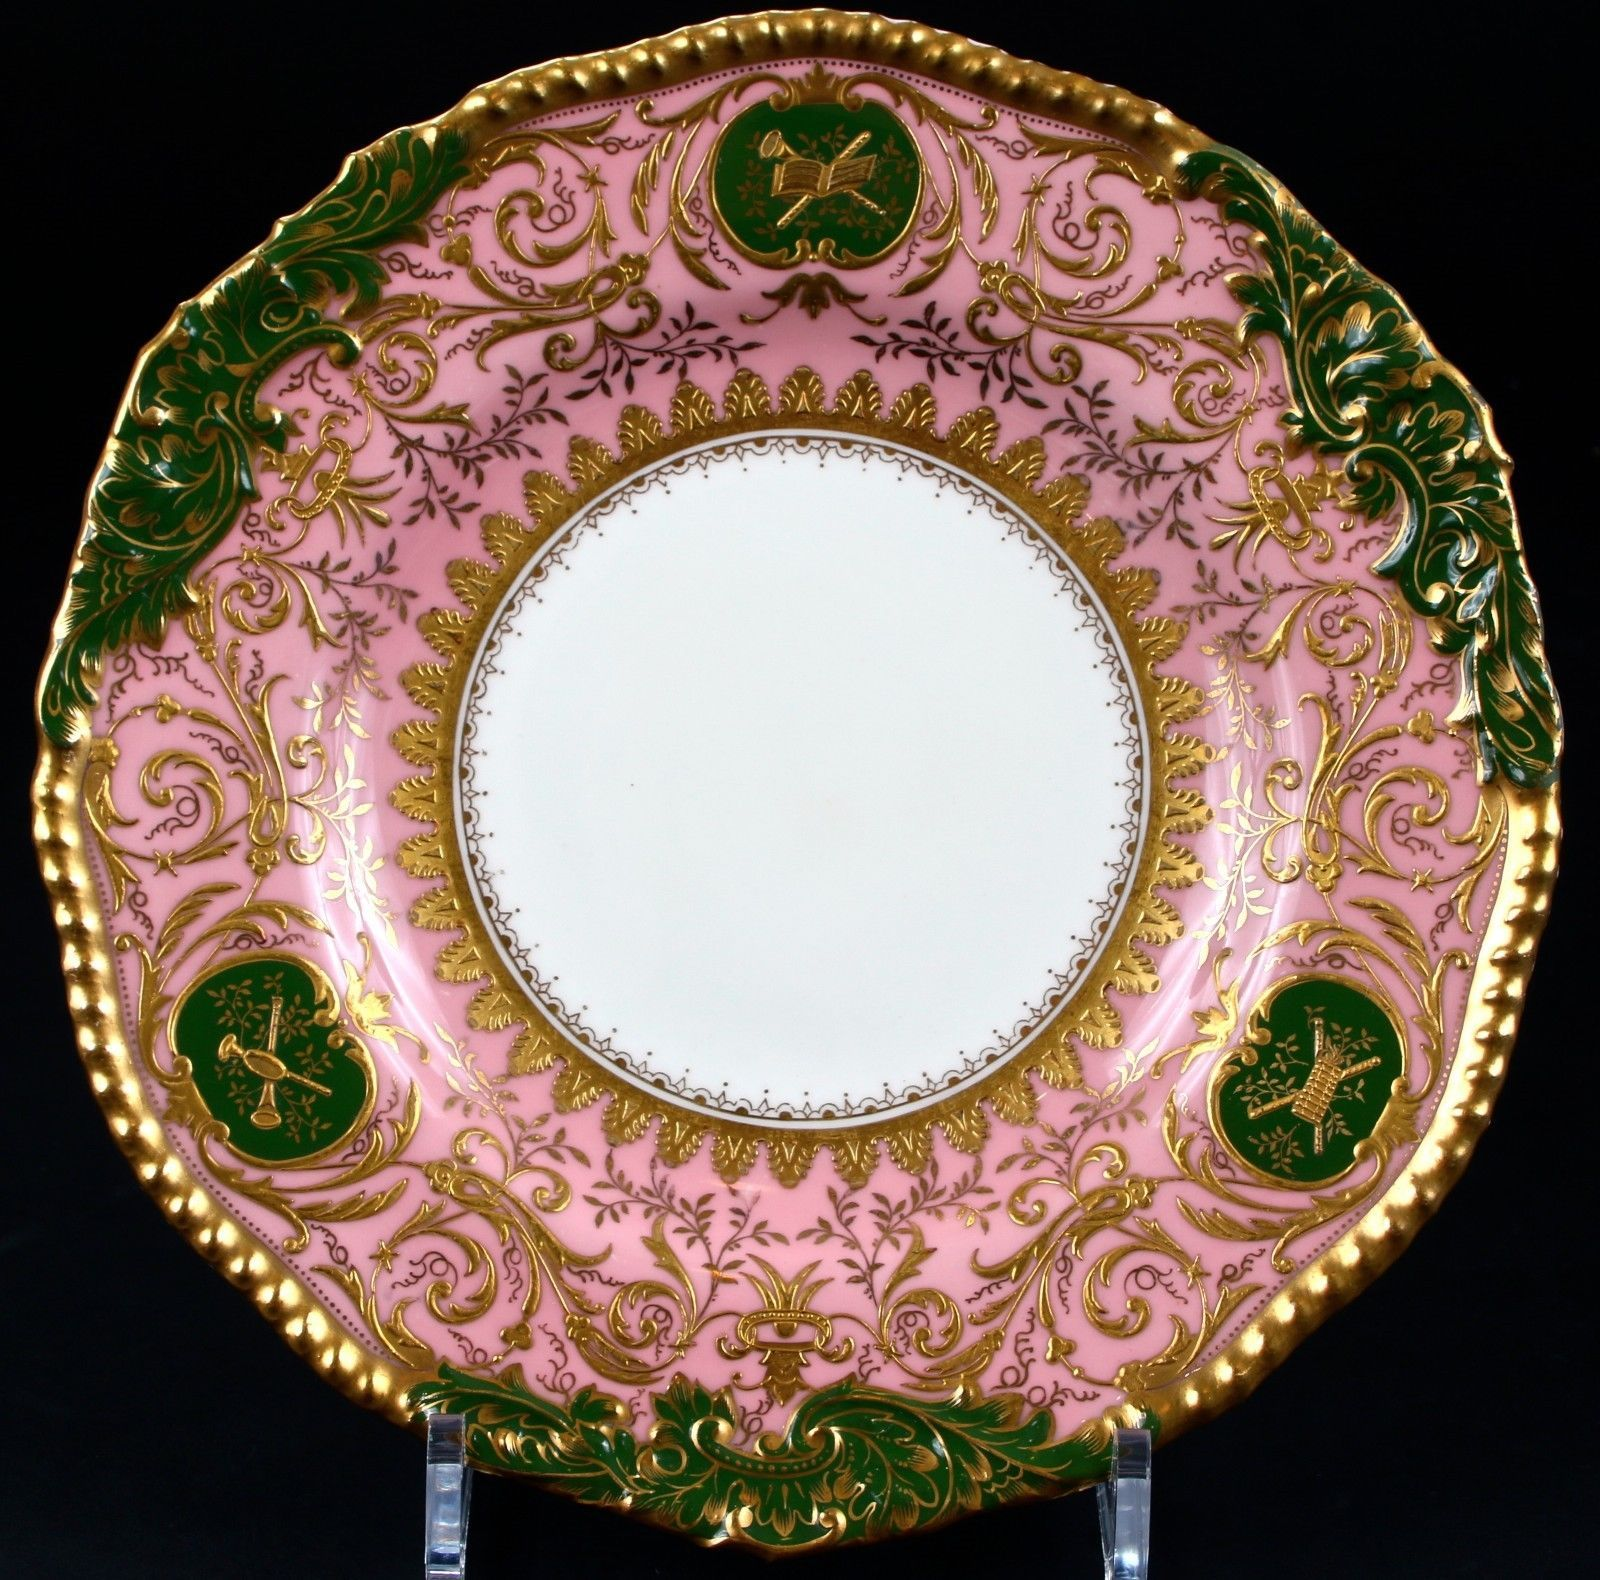 6 Coalport Pink and Green Heavily Gilded Plates: gold encrusted